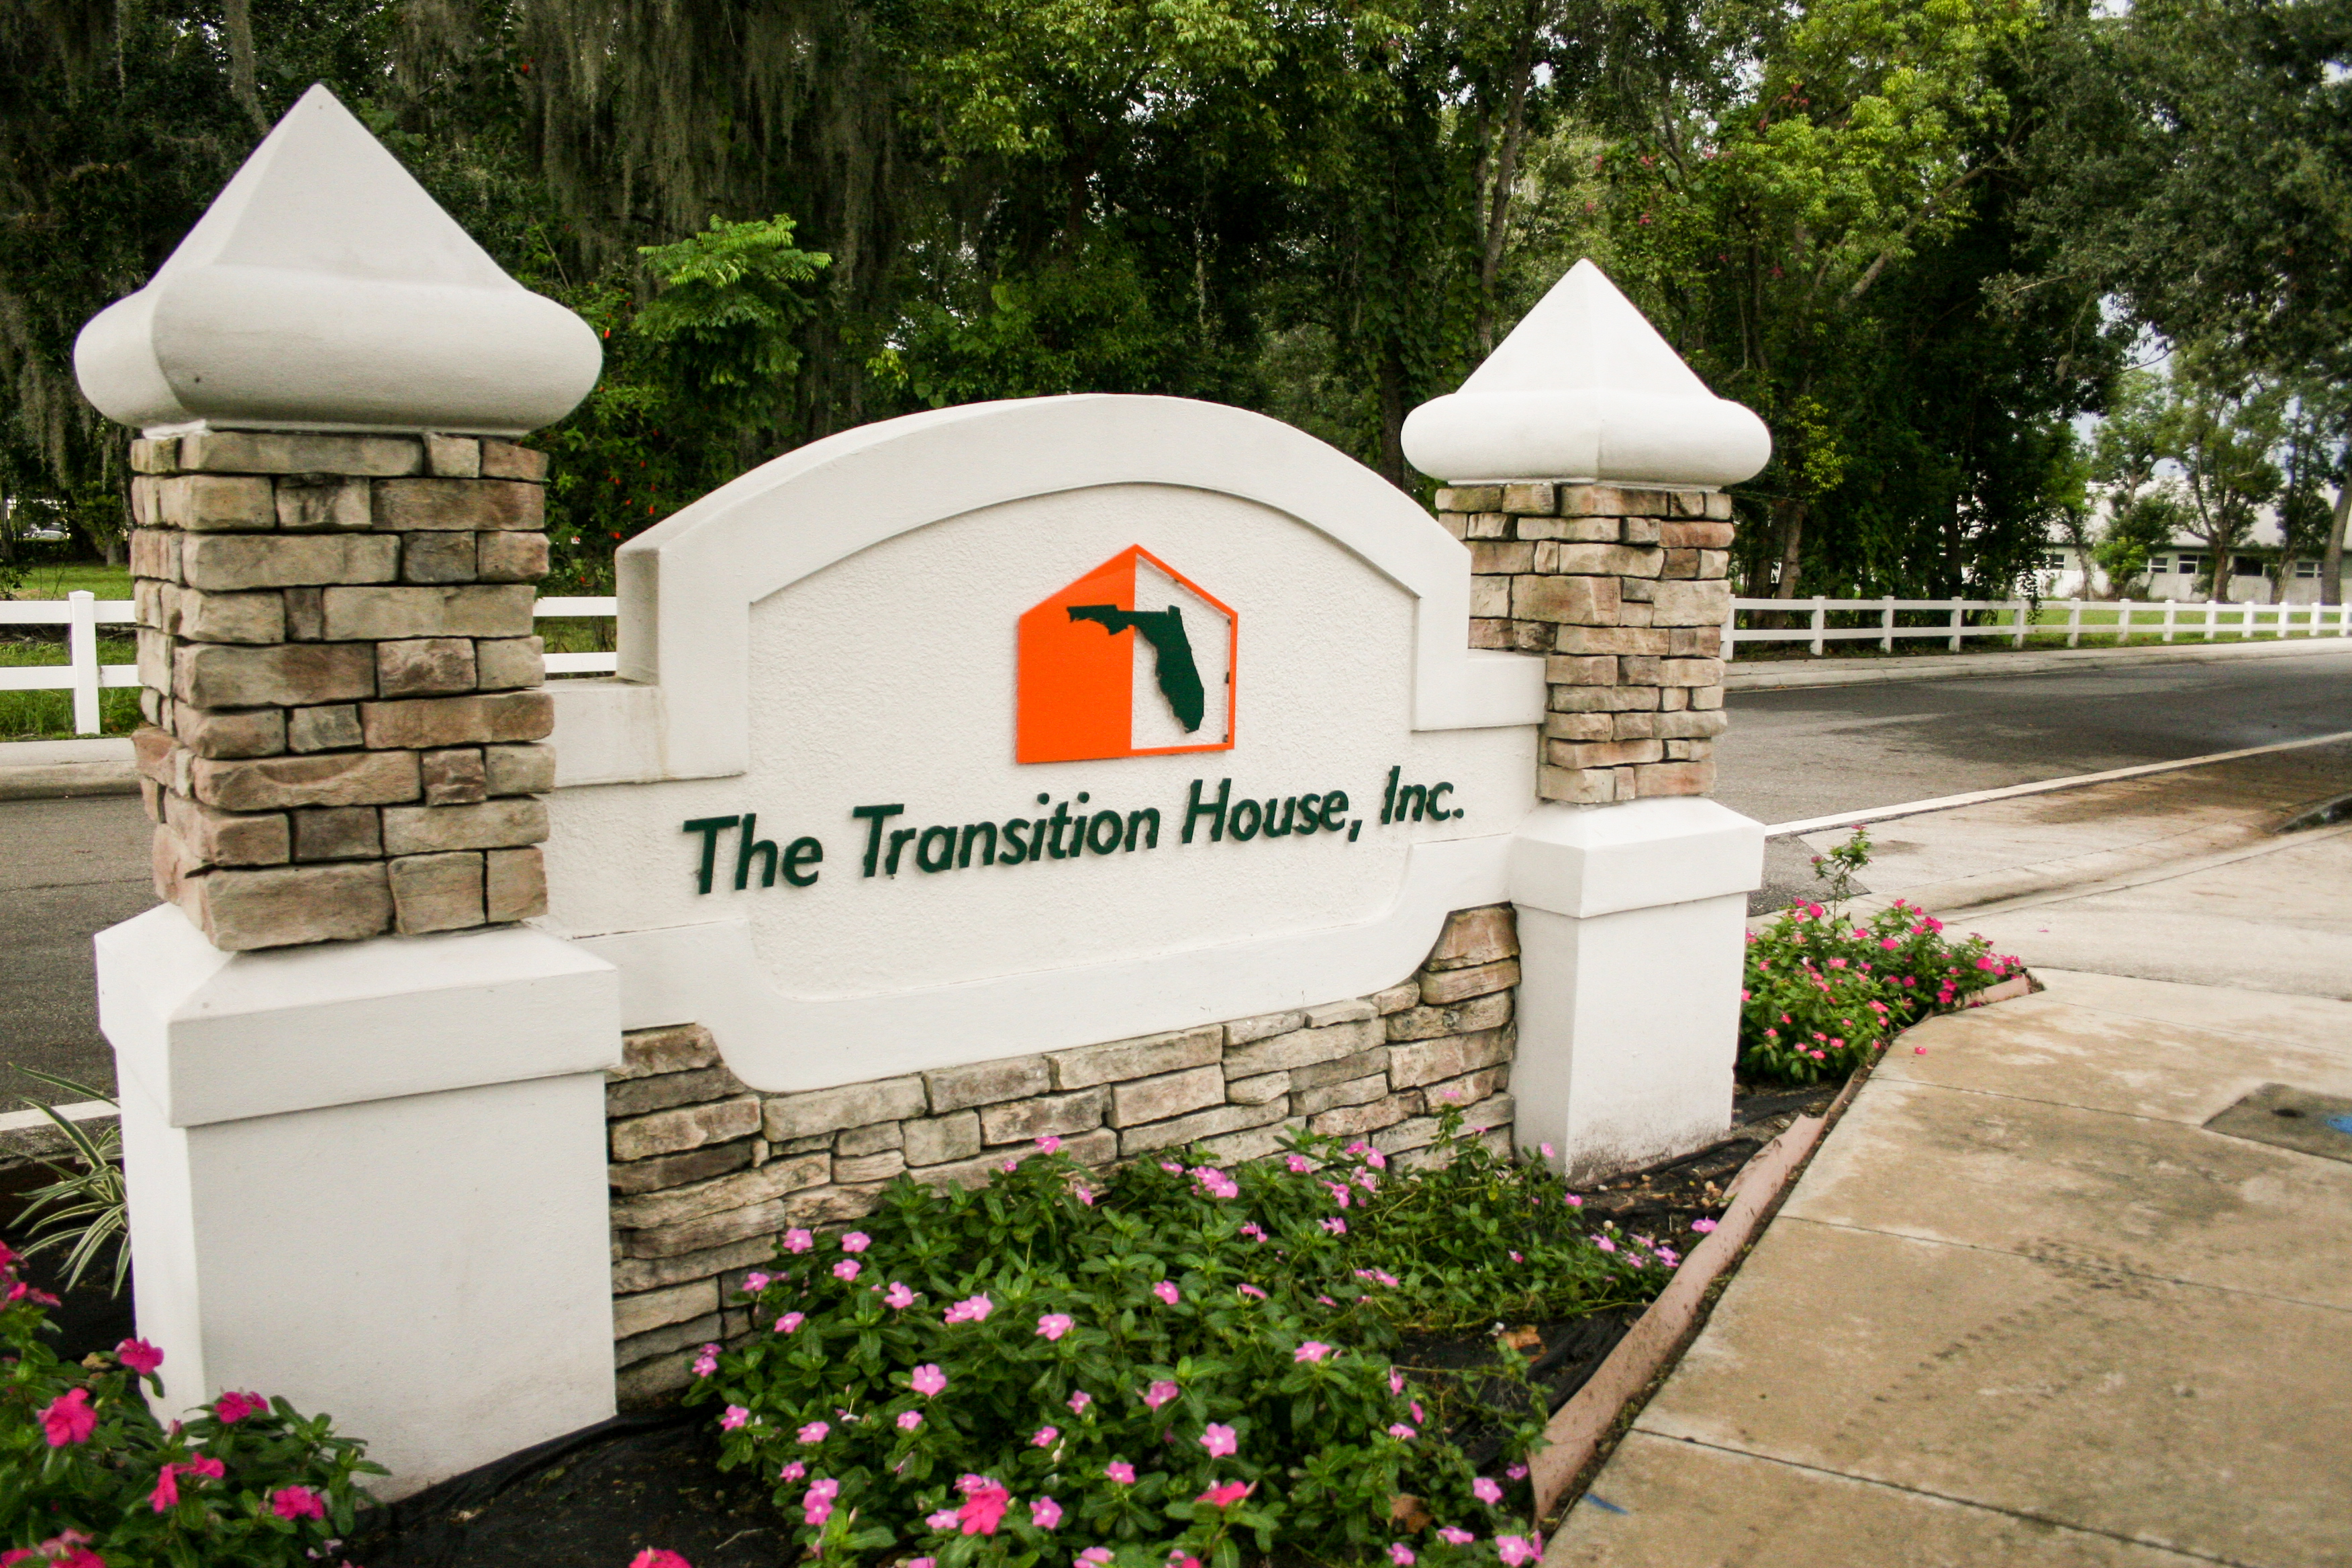 What is a transition house?